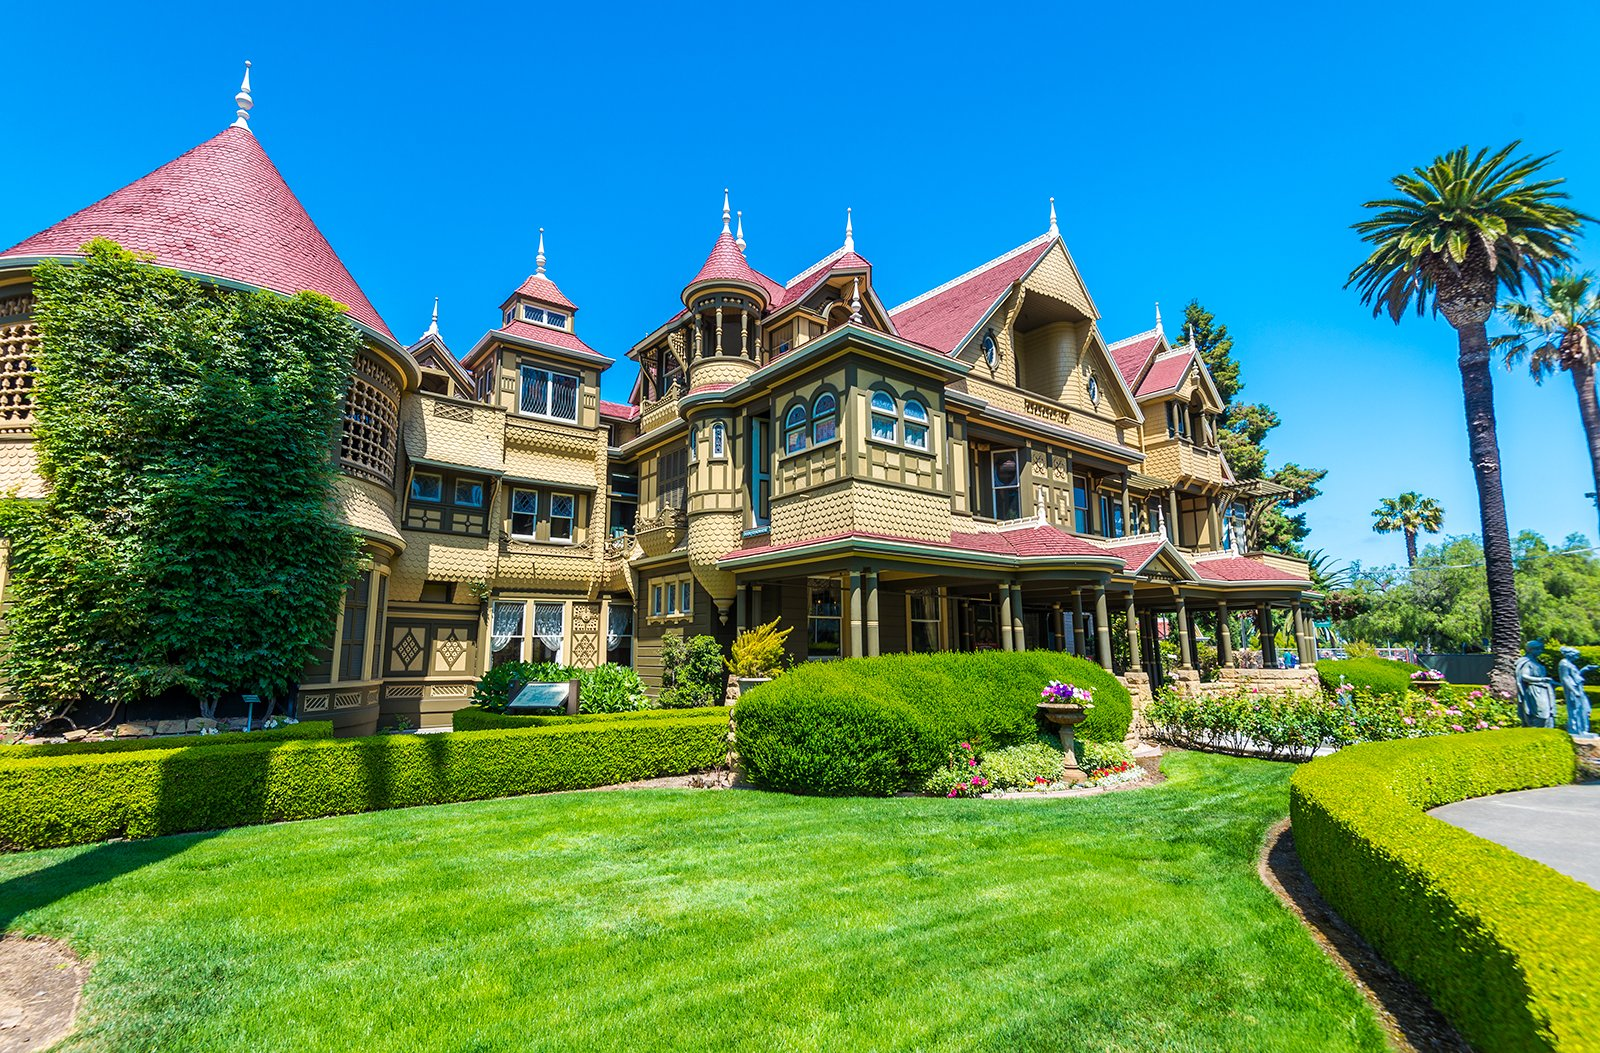 In The Good Old Summertime at Winchester Mystery House